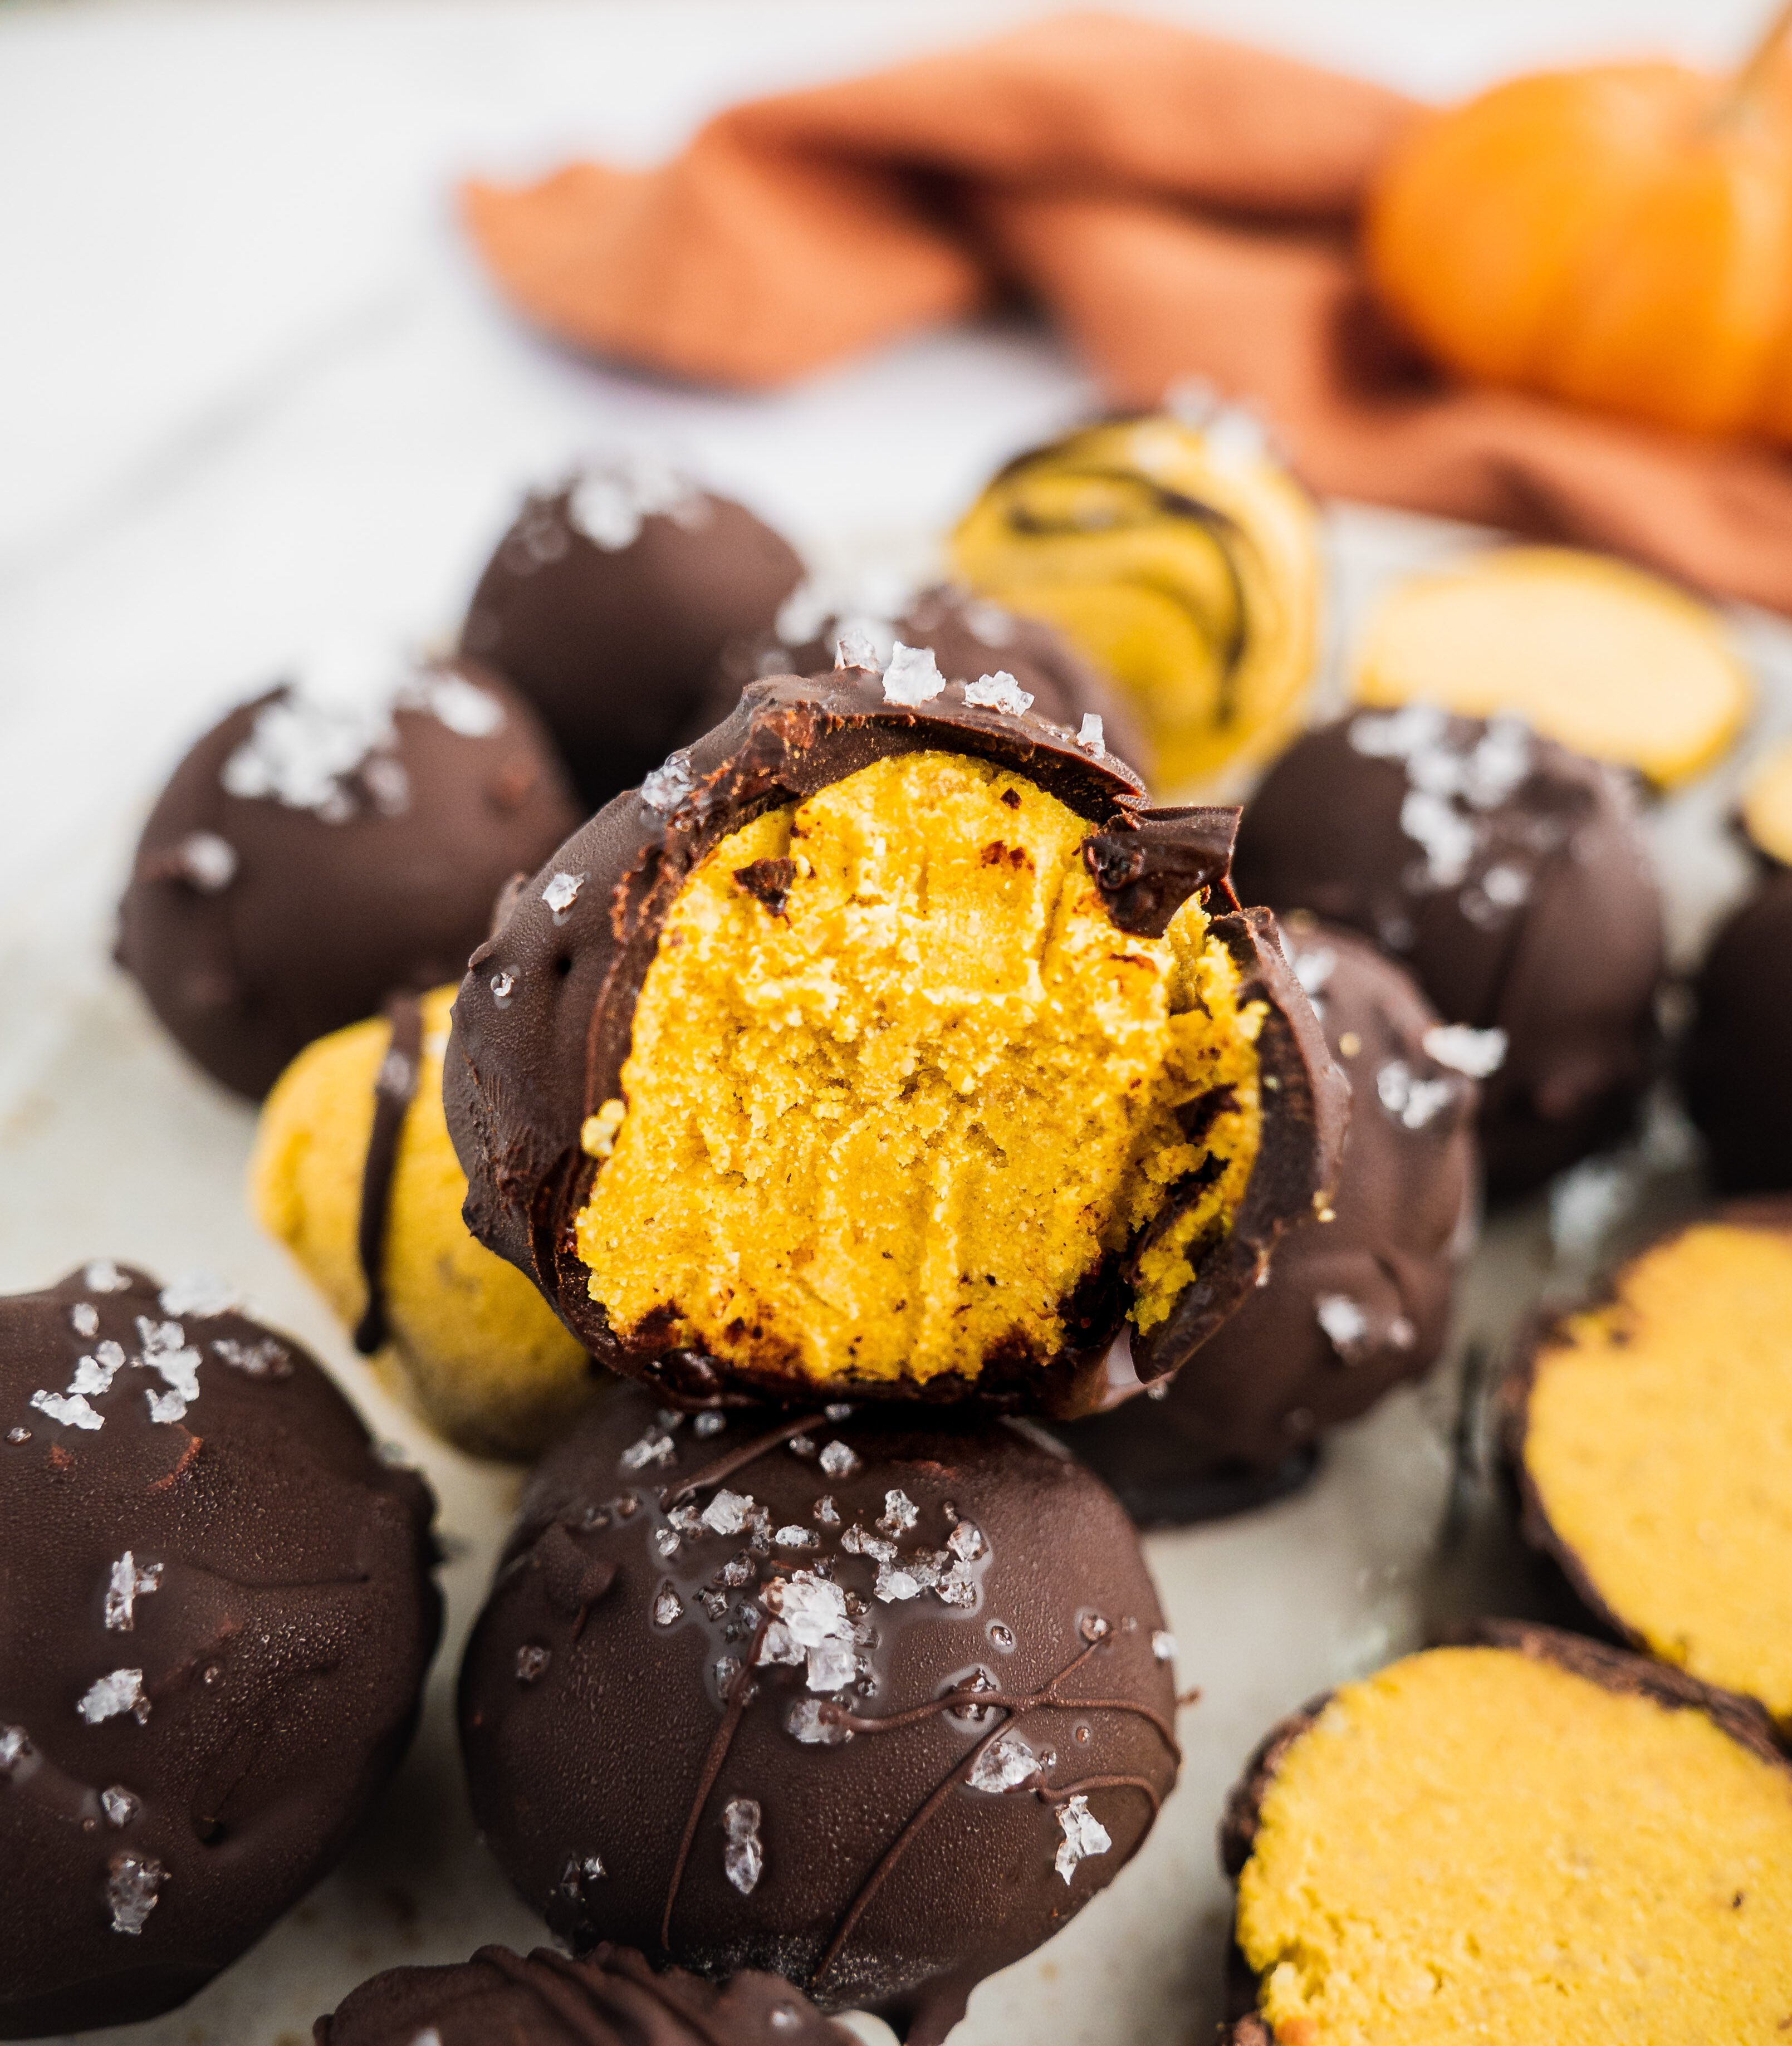 A piece of pumpkin spice chocolate truffle with a bite in the middle. There is a orange kitchen towel in the background.